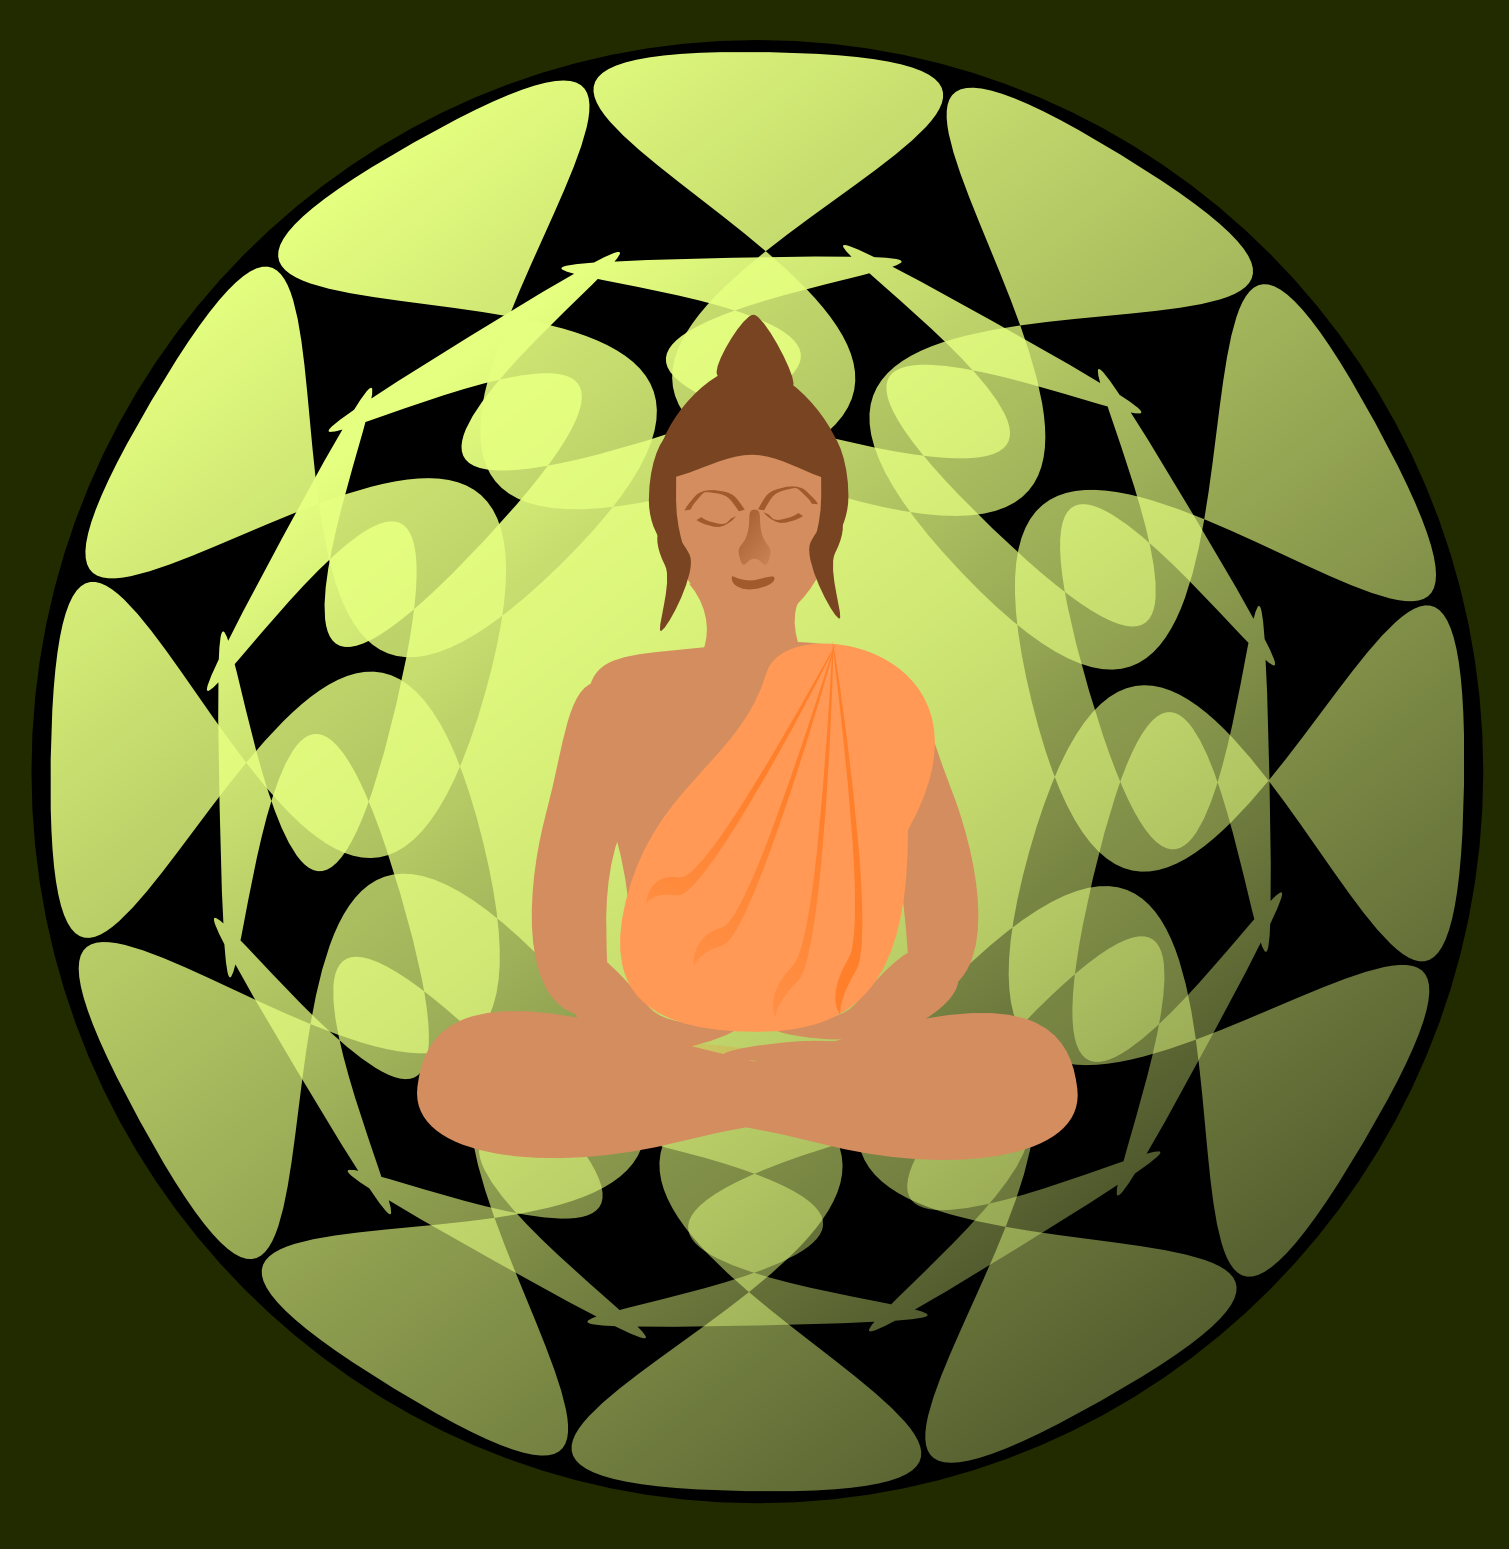 File:Budh.png